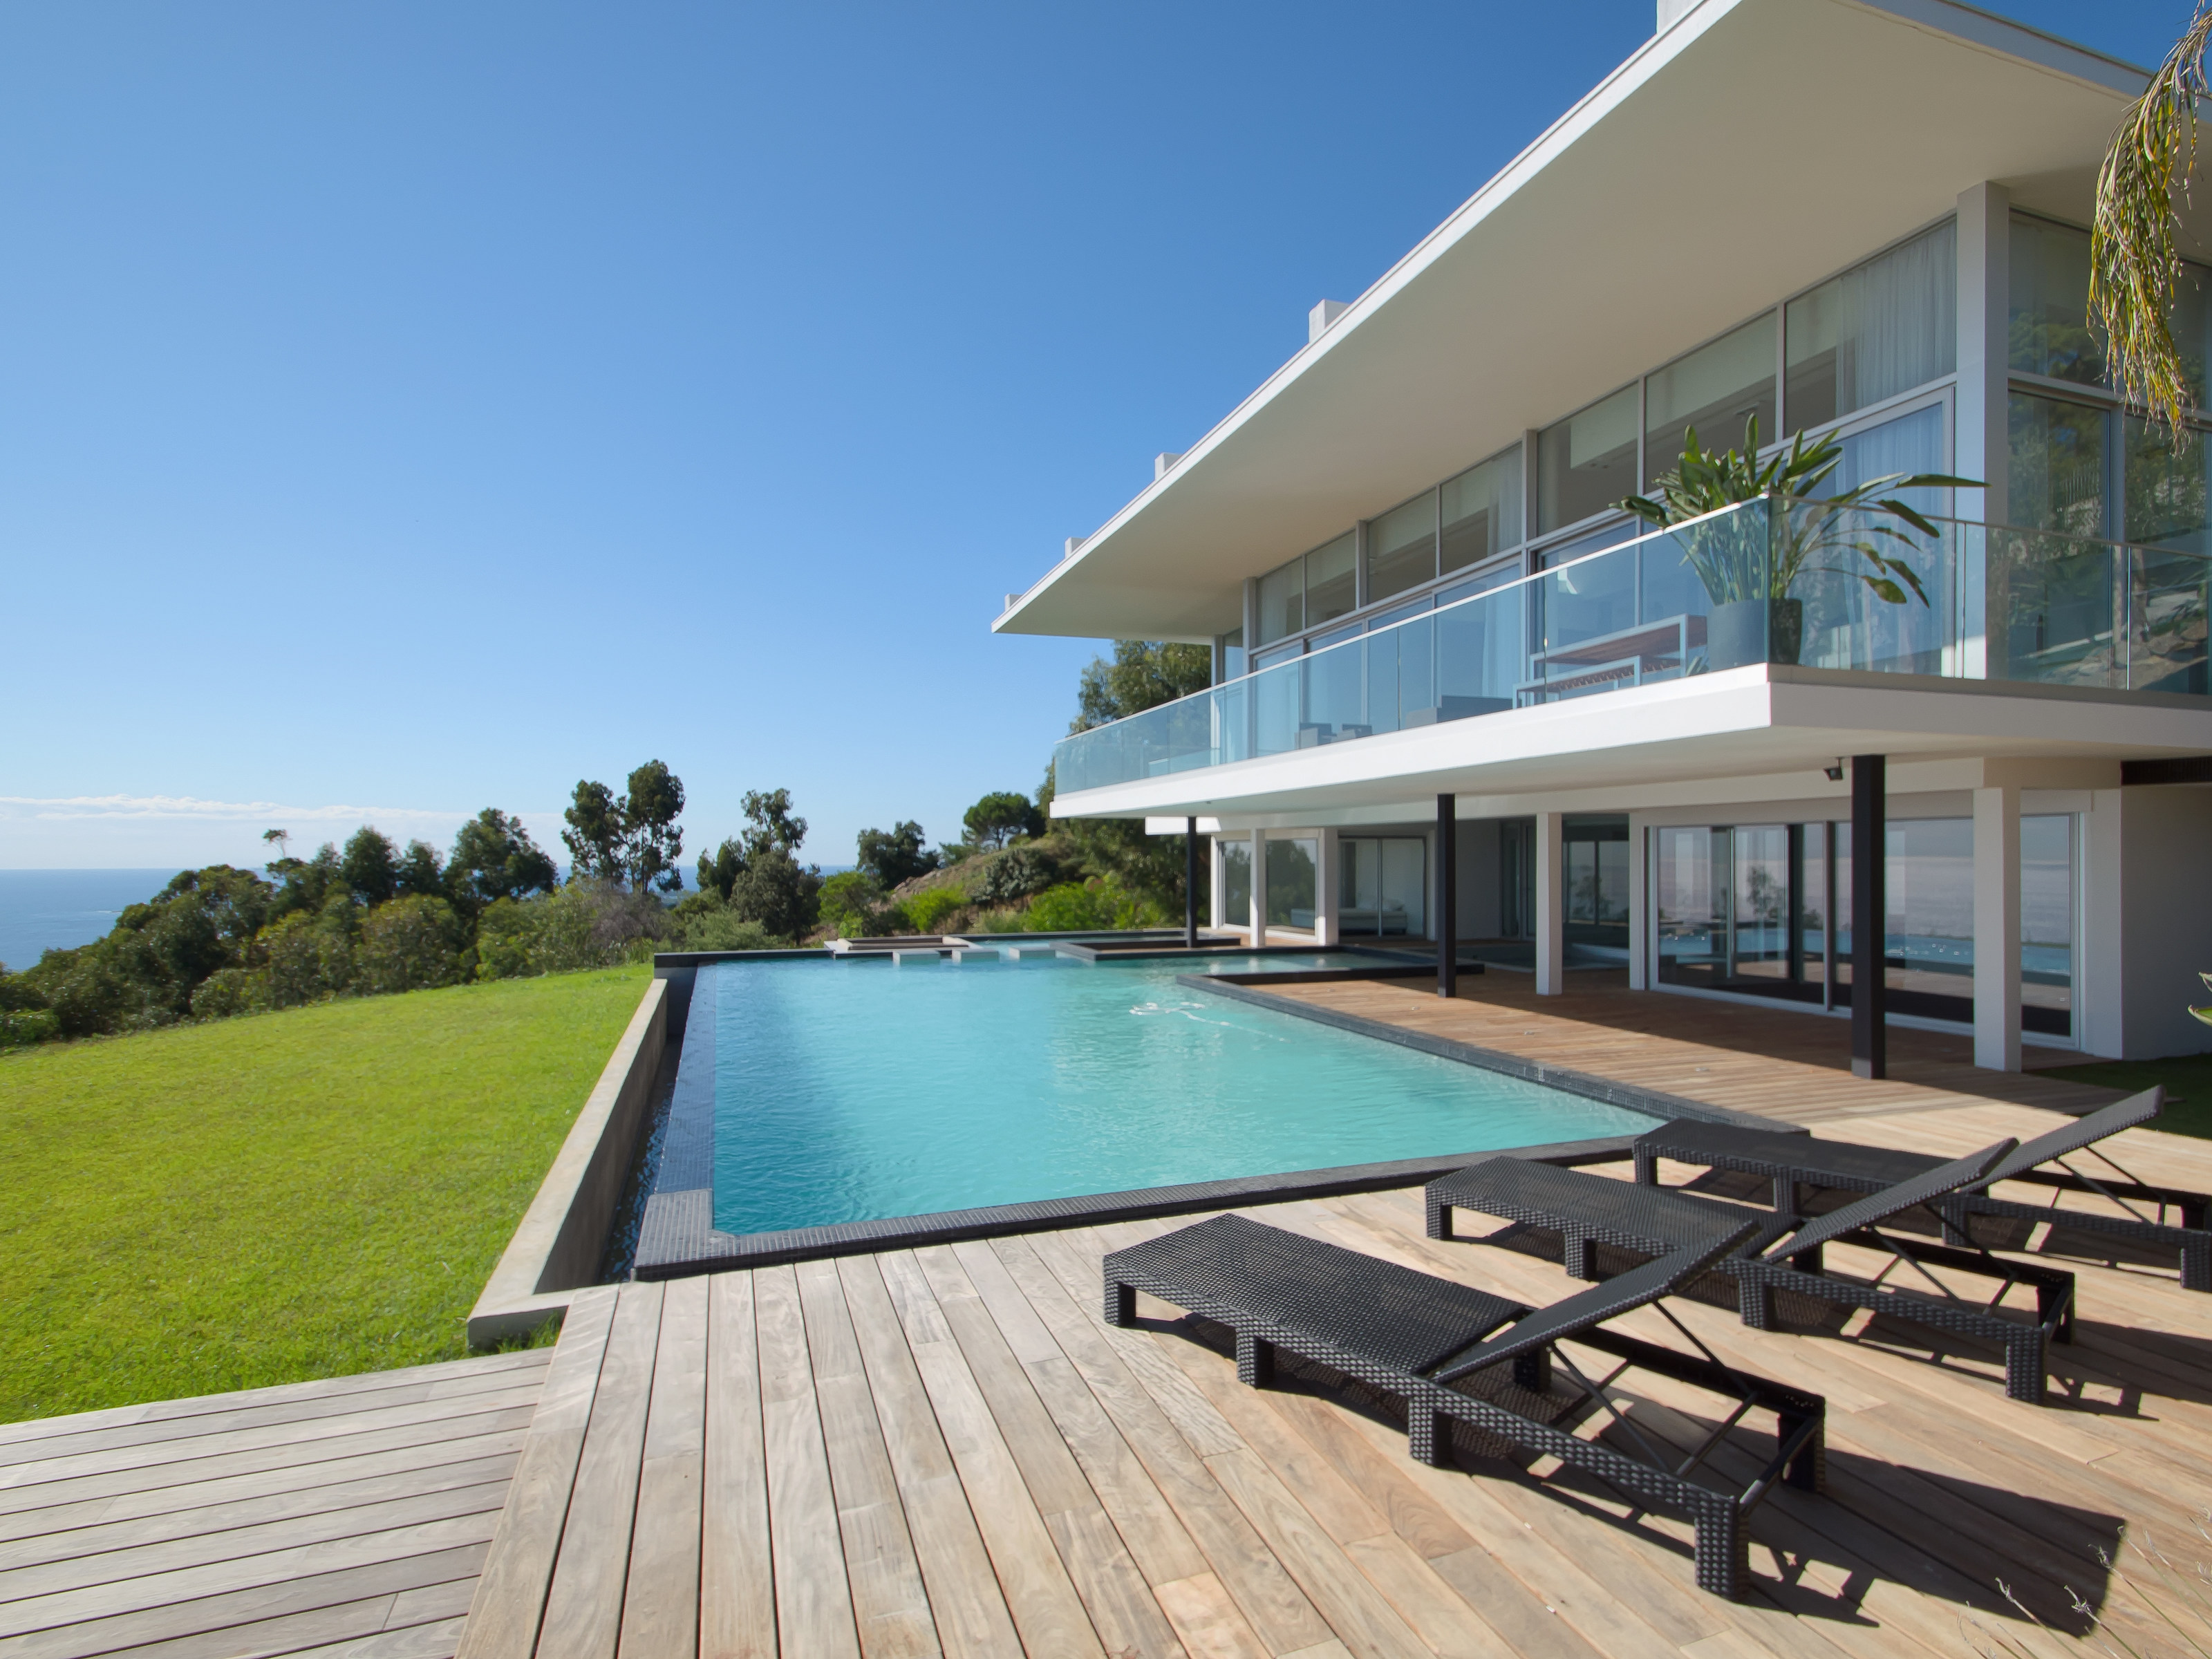 Other Residential for Sale at SUPER CANNES - NEWLY BUILT MODERN VILLA Cannes, Provence-Alpes-Cote D'Azur 06220 France